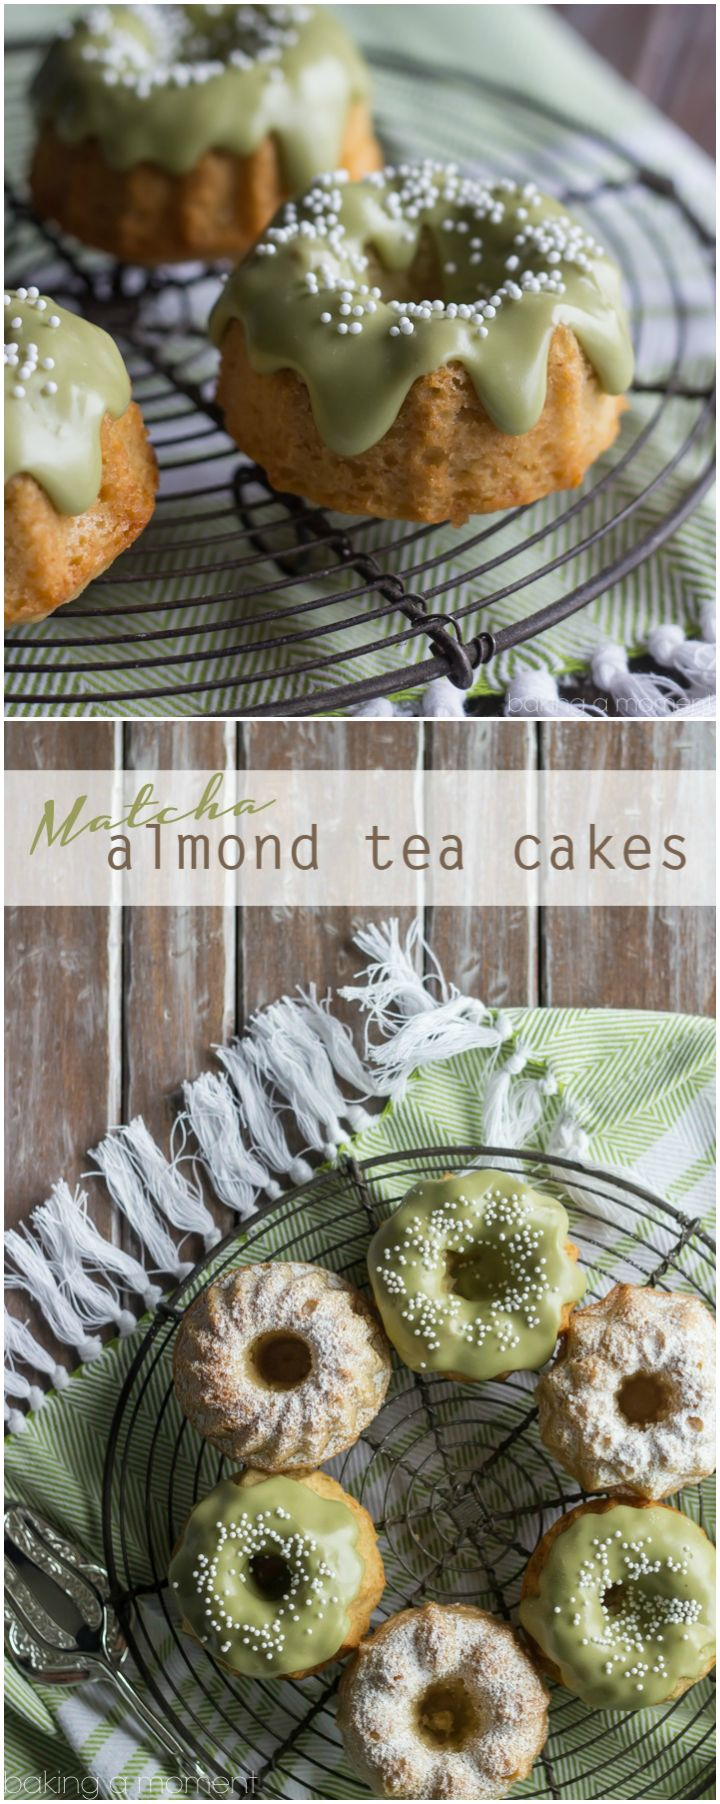 These almond tea cakes came together in a snap, with healthier ingredients like…